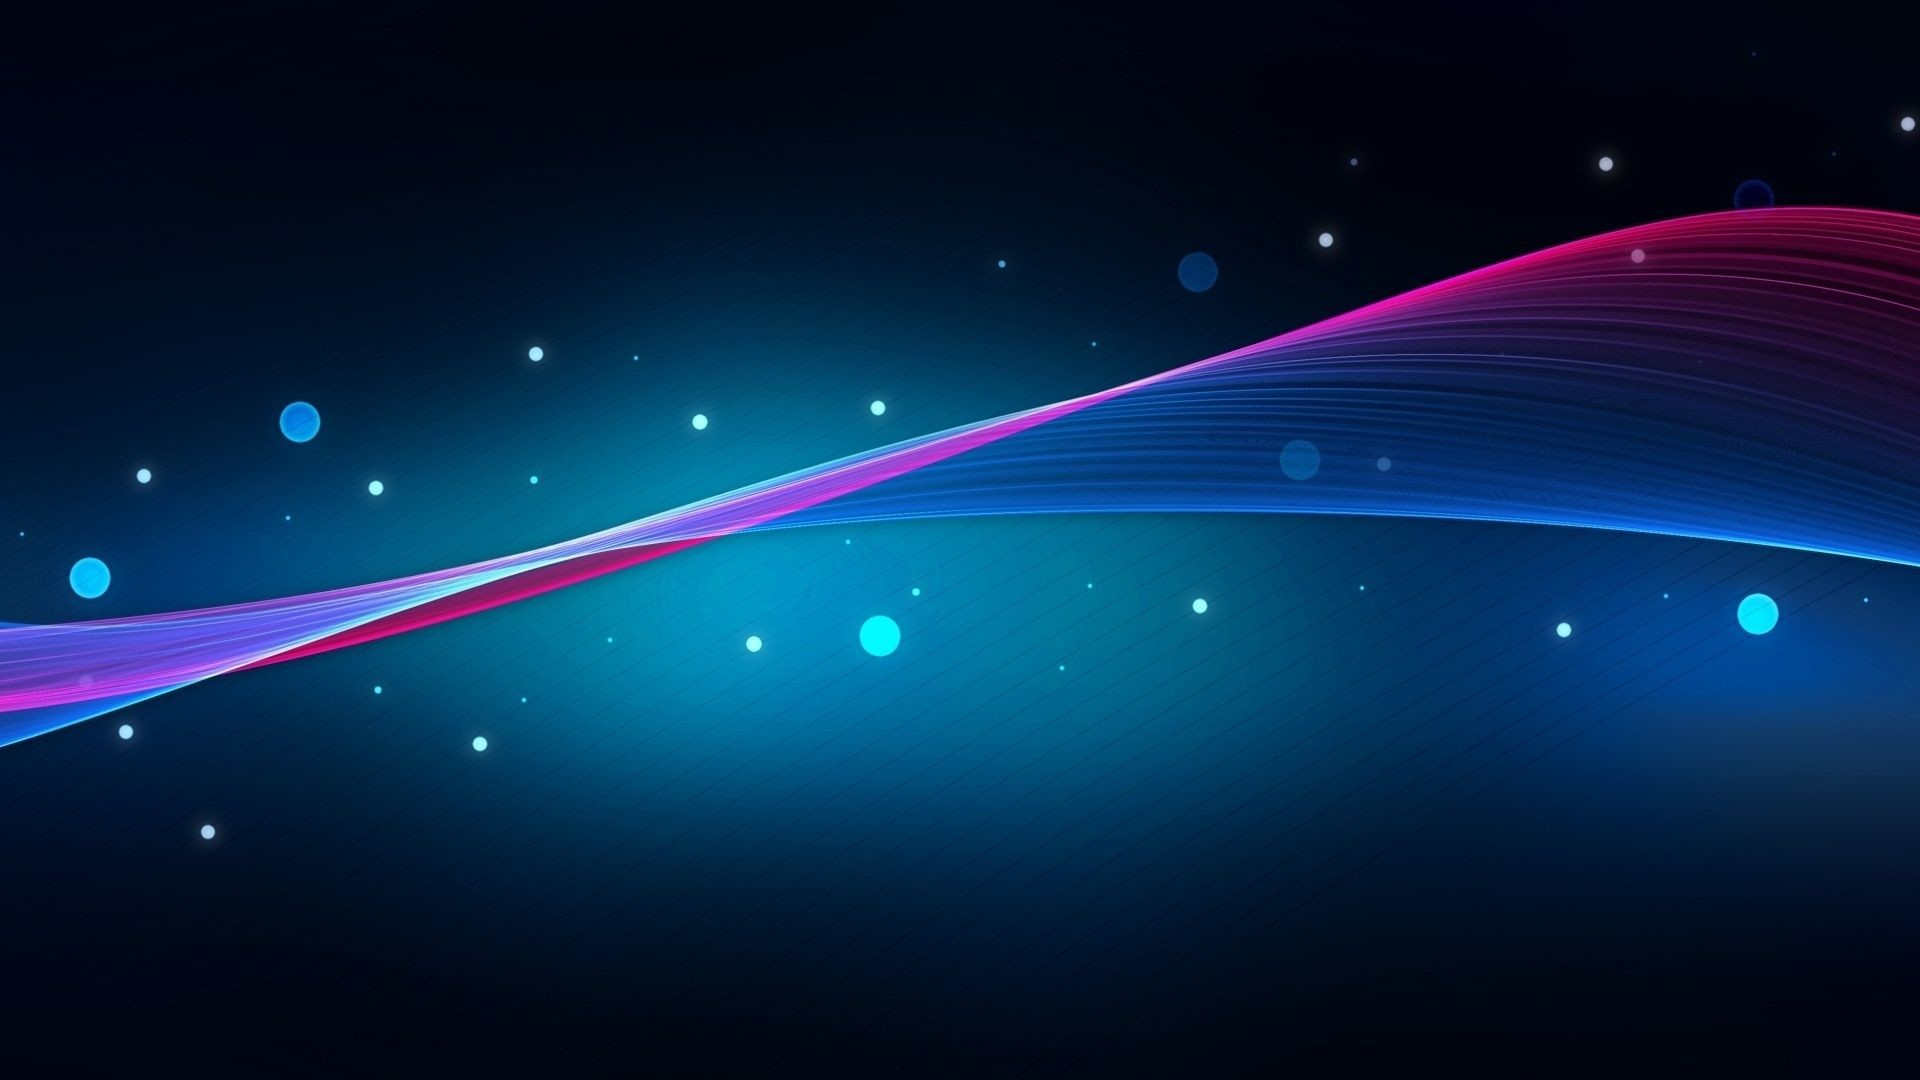 Solid, color, HD Wallpaper and FREE Stock Photo